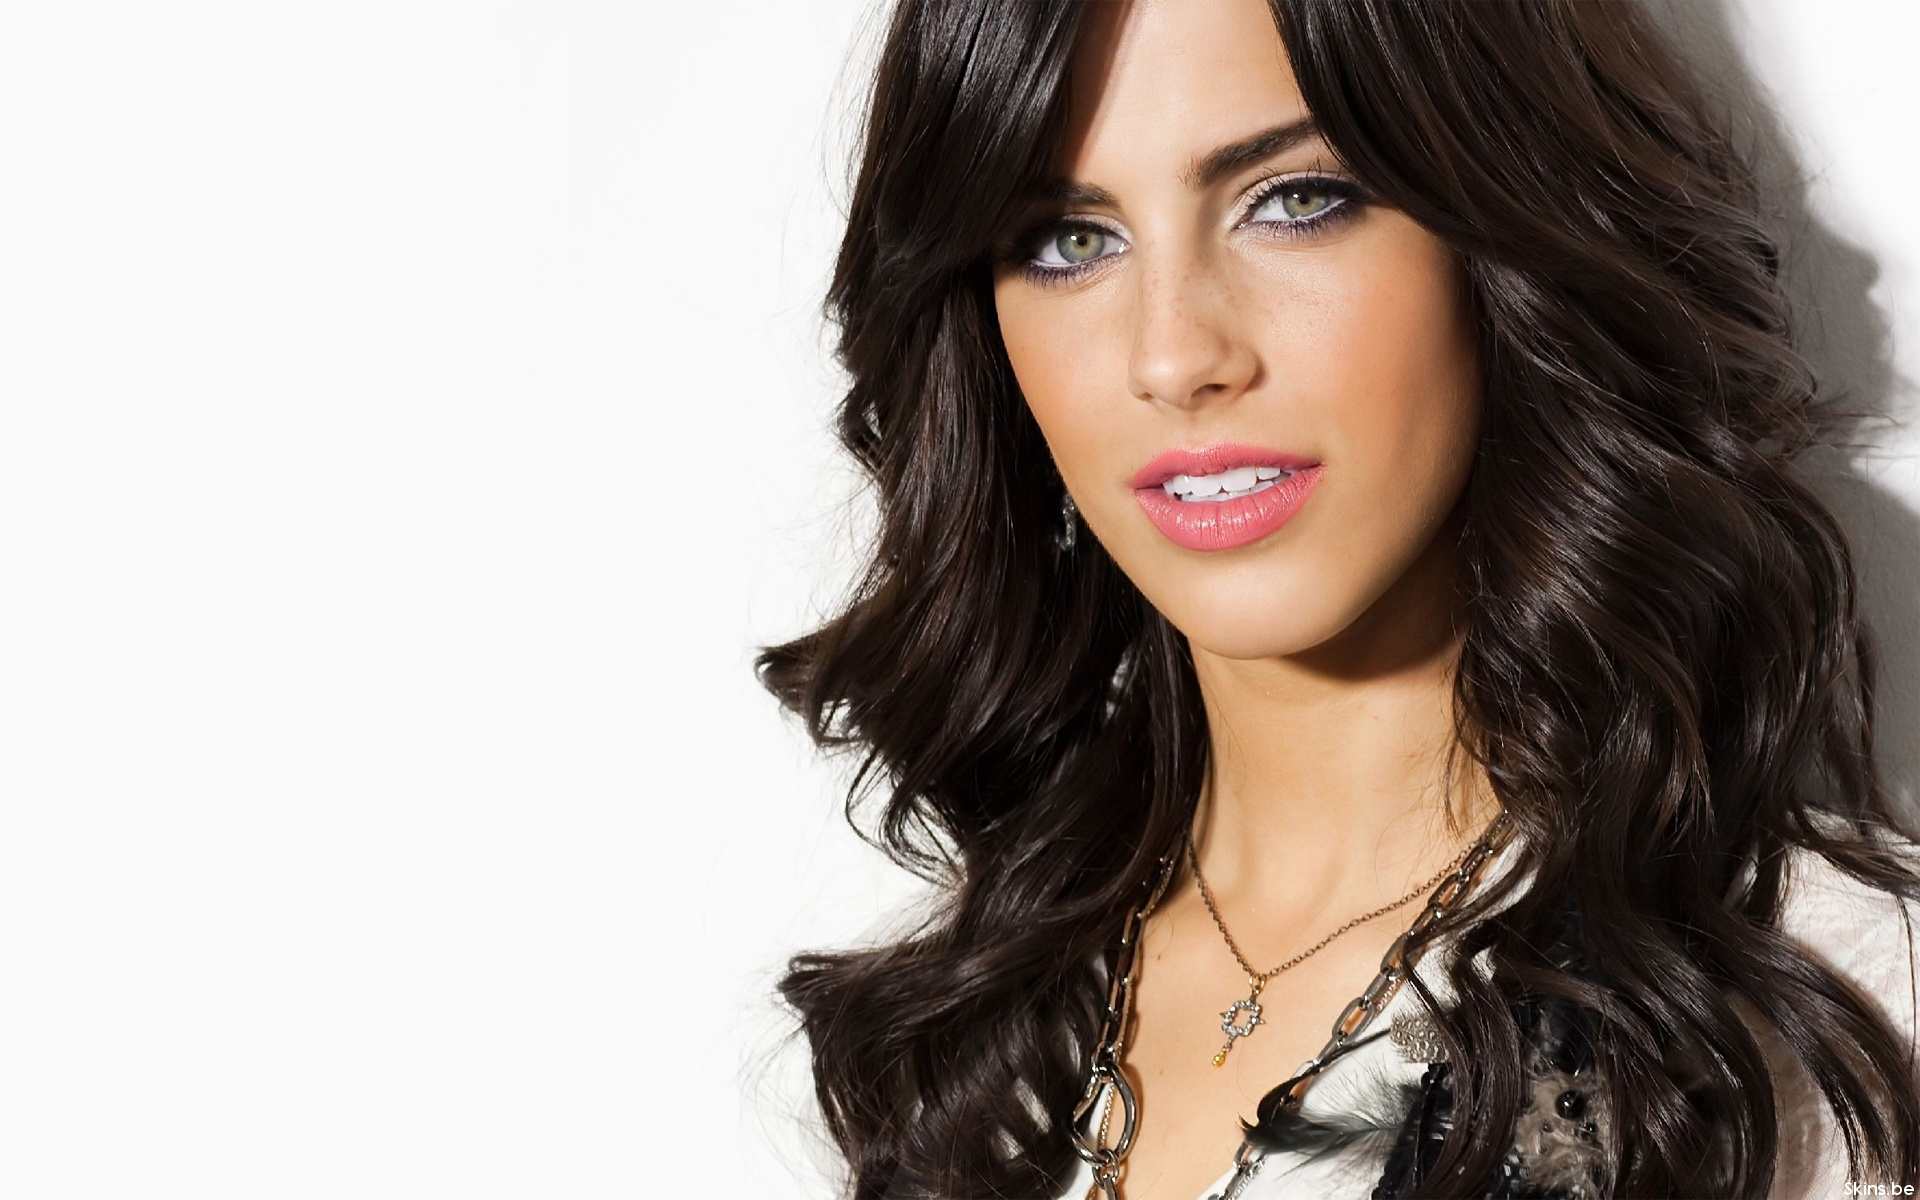 Jessica Lowndes Download Free Backgrounds HD